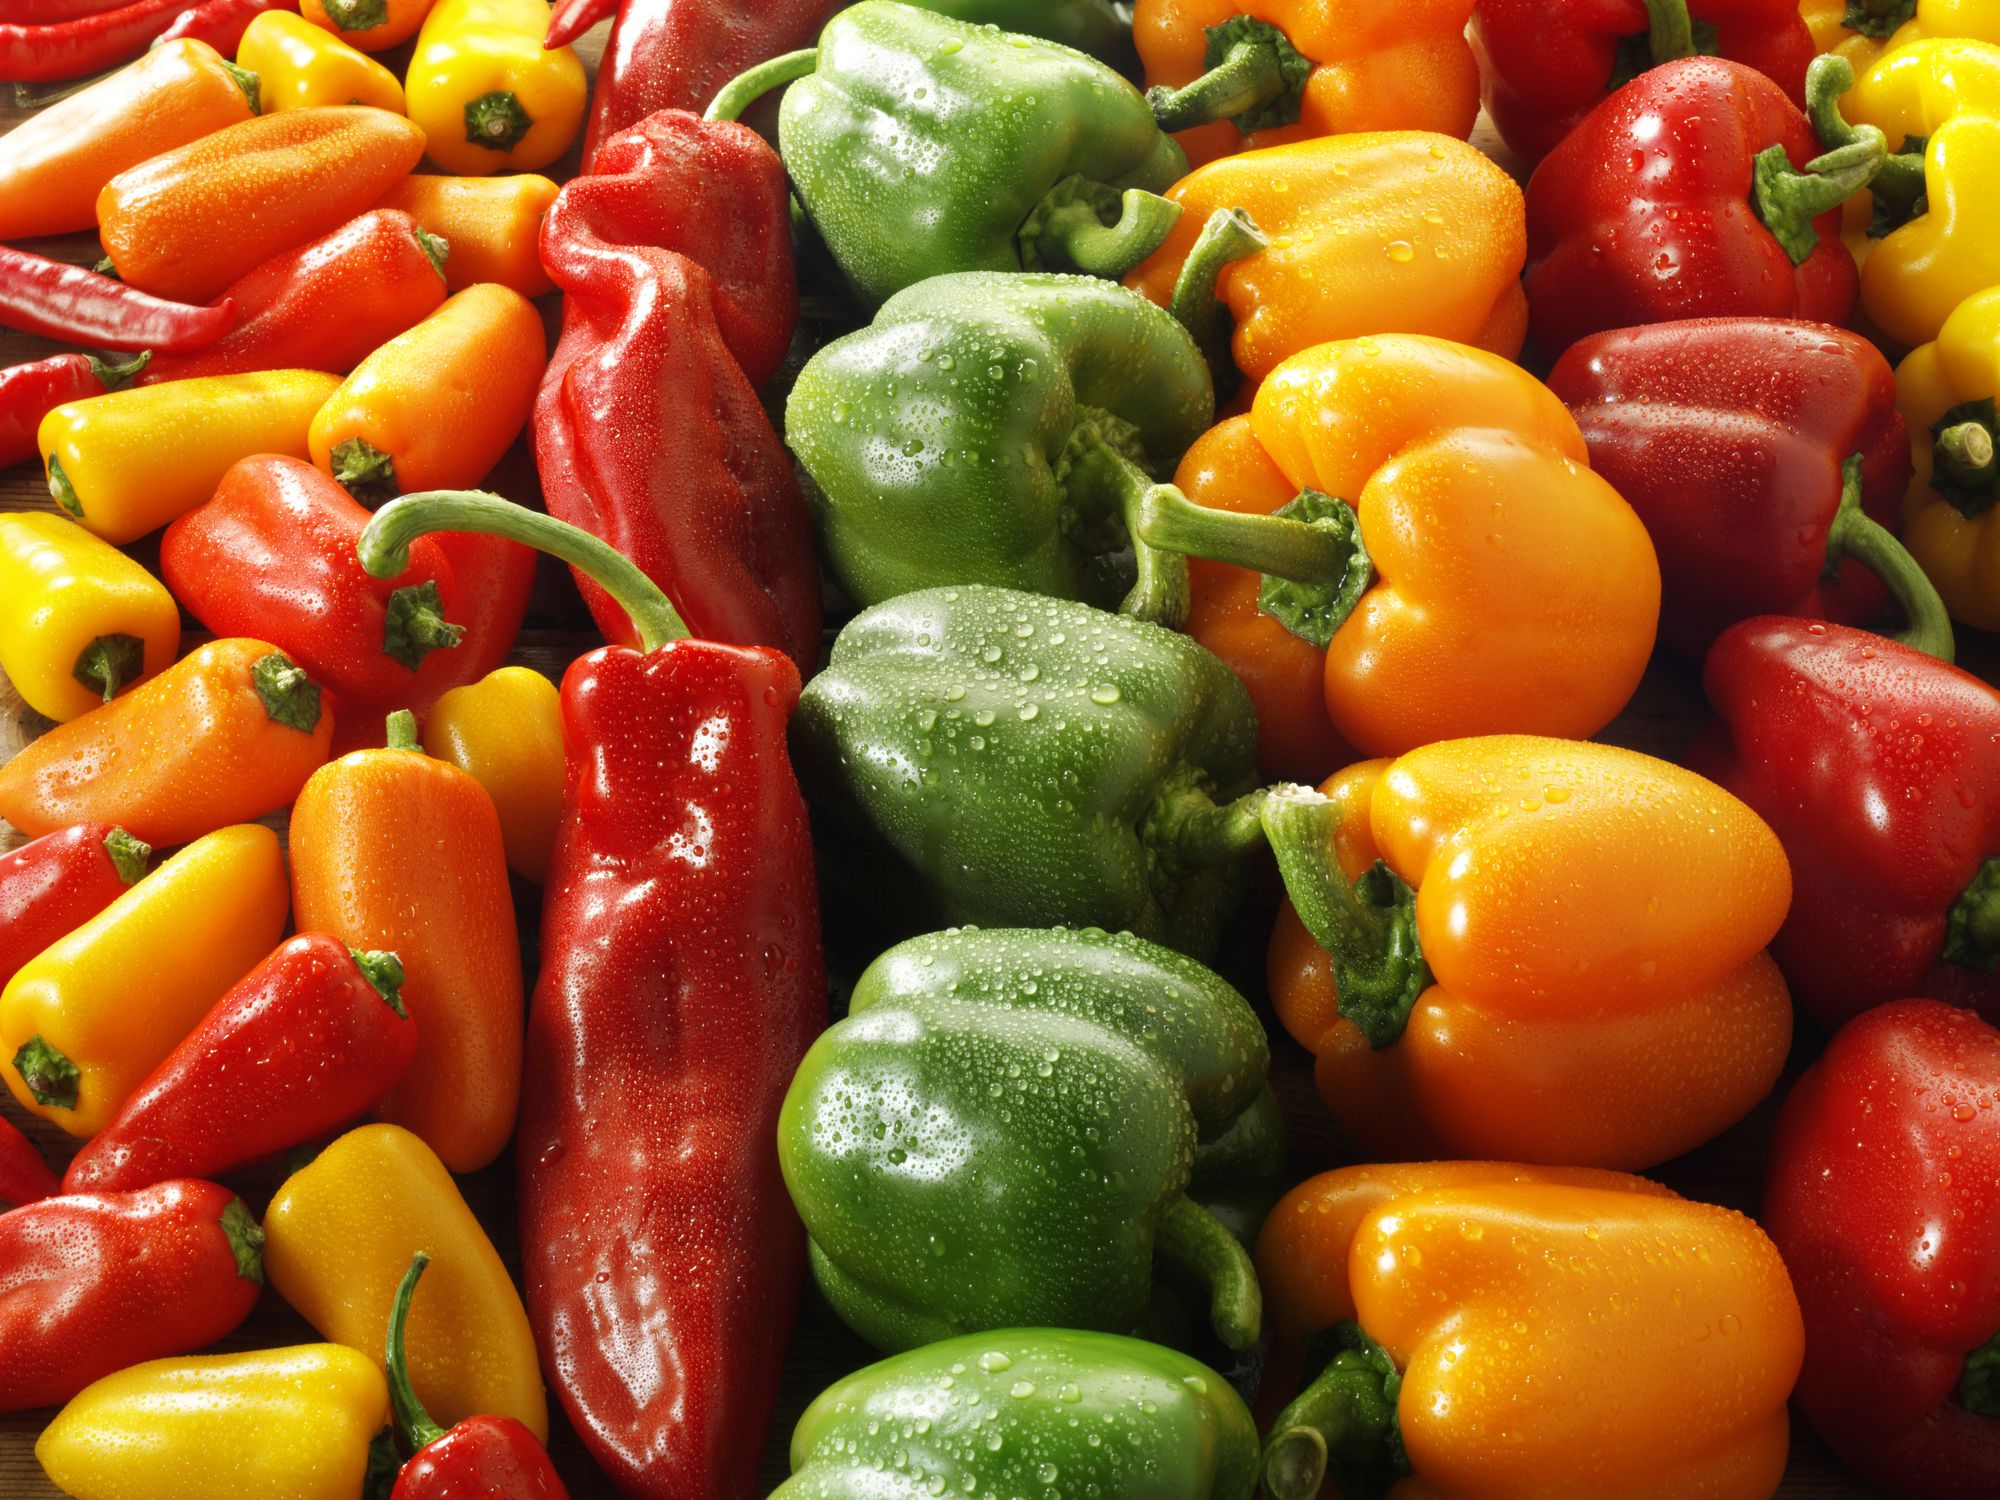 Types of Sweet Peppers - Bell Peppers and Beyond